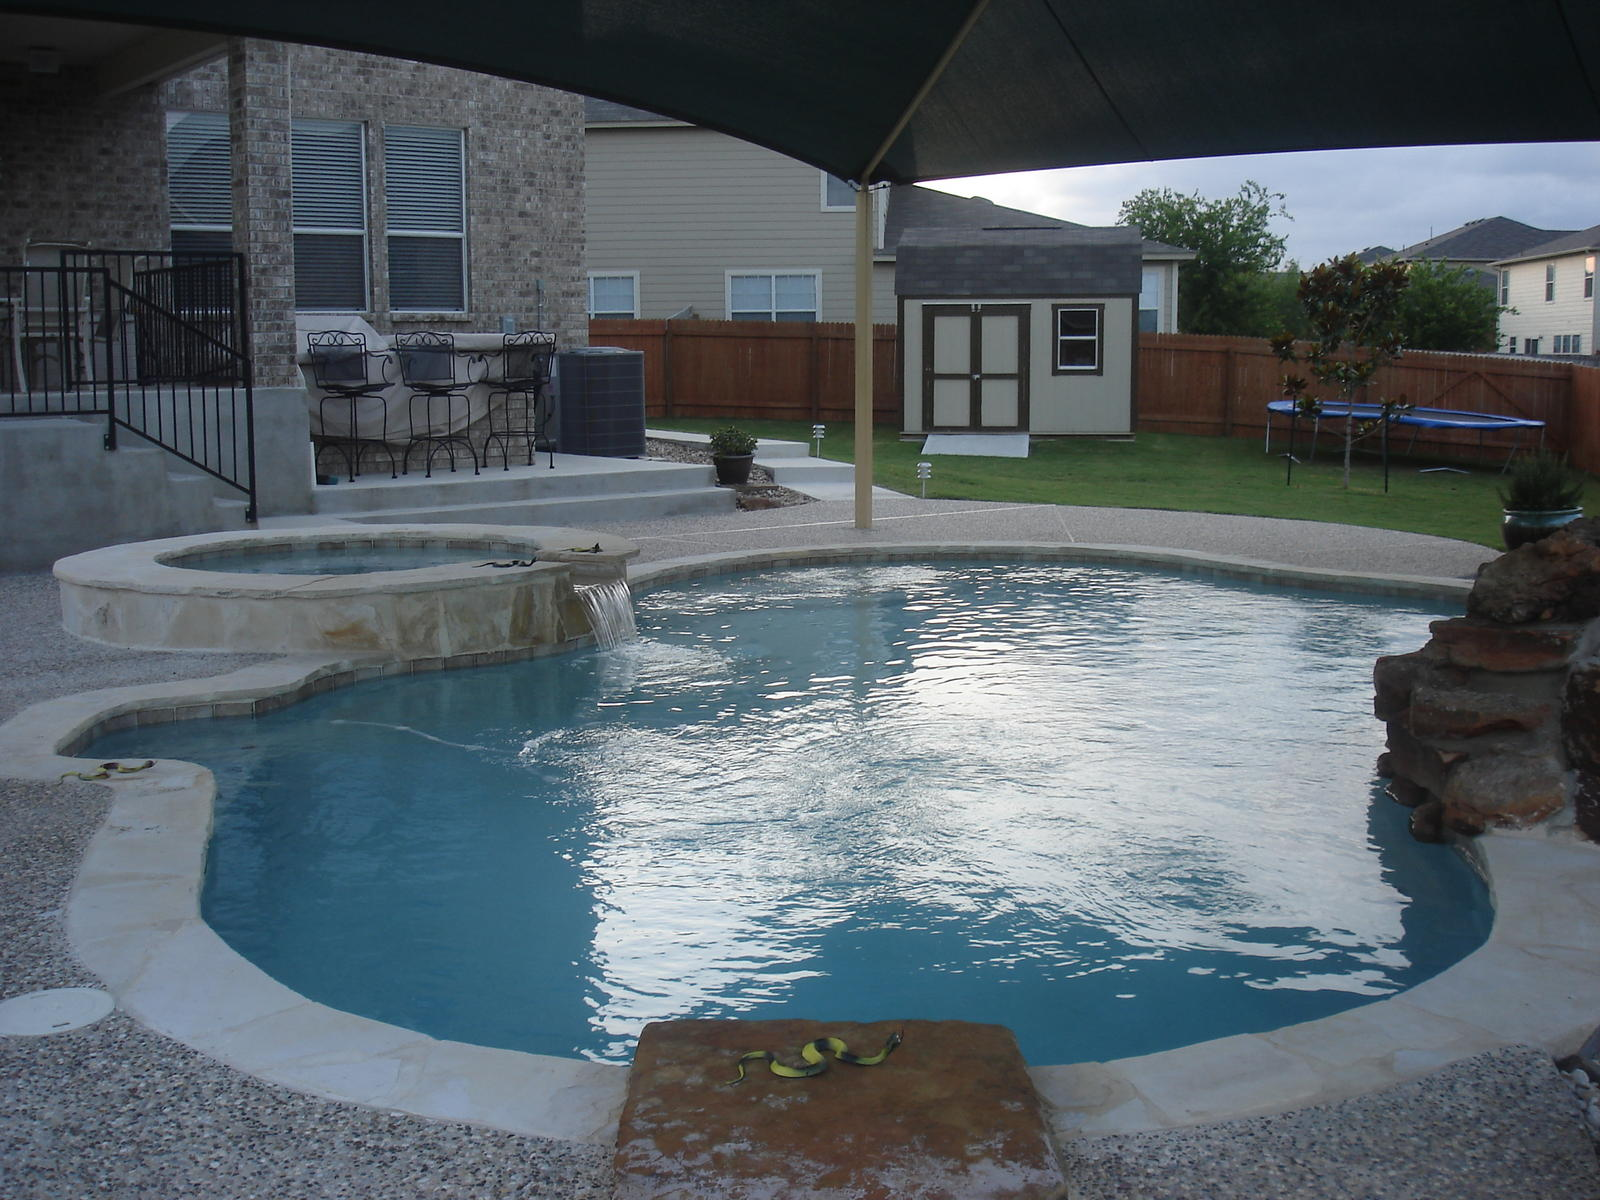 hight resolution of recommendation on swimming pool companies dsc02250 jpg